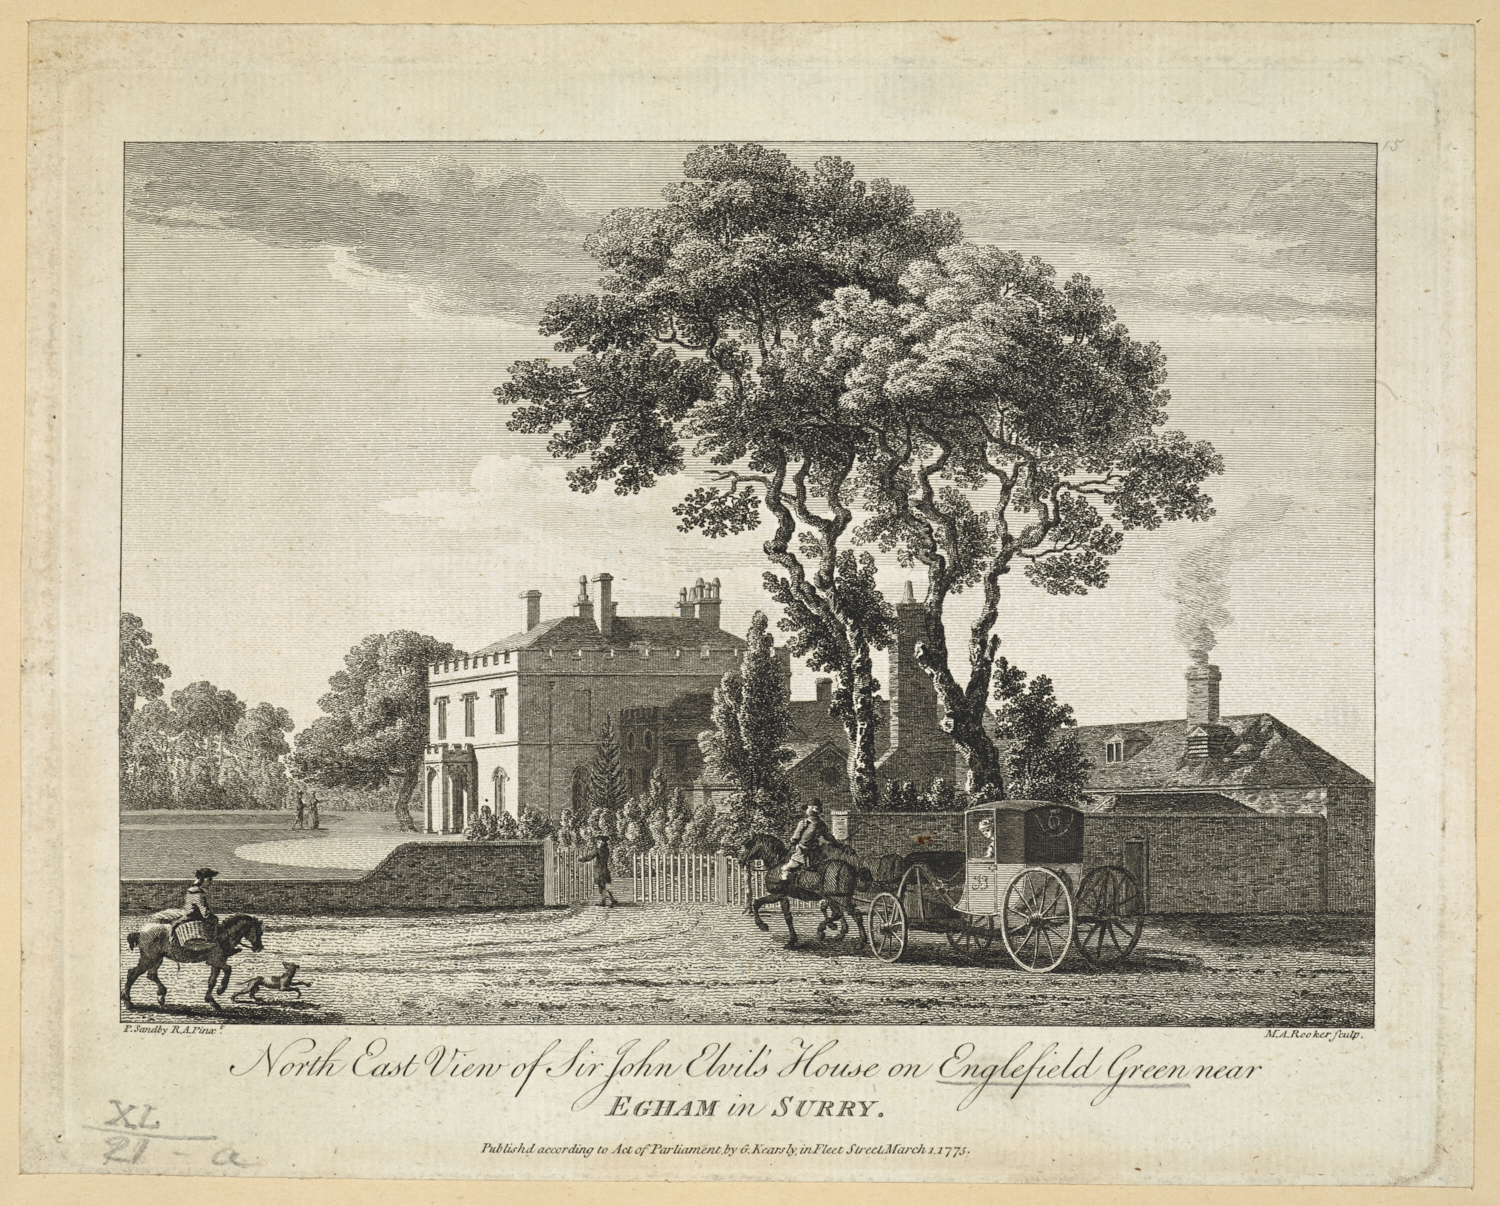 North East View of Sir John Elvil's House on Englefield Green near EGHAM in SURRY. / P. Sandby pinxt. ; M. A. Rooker sculp.